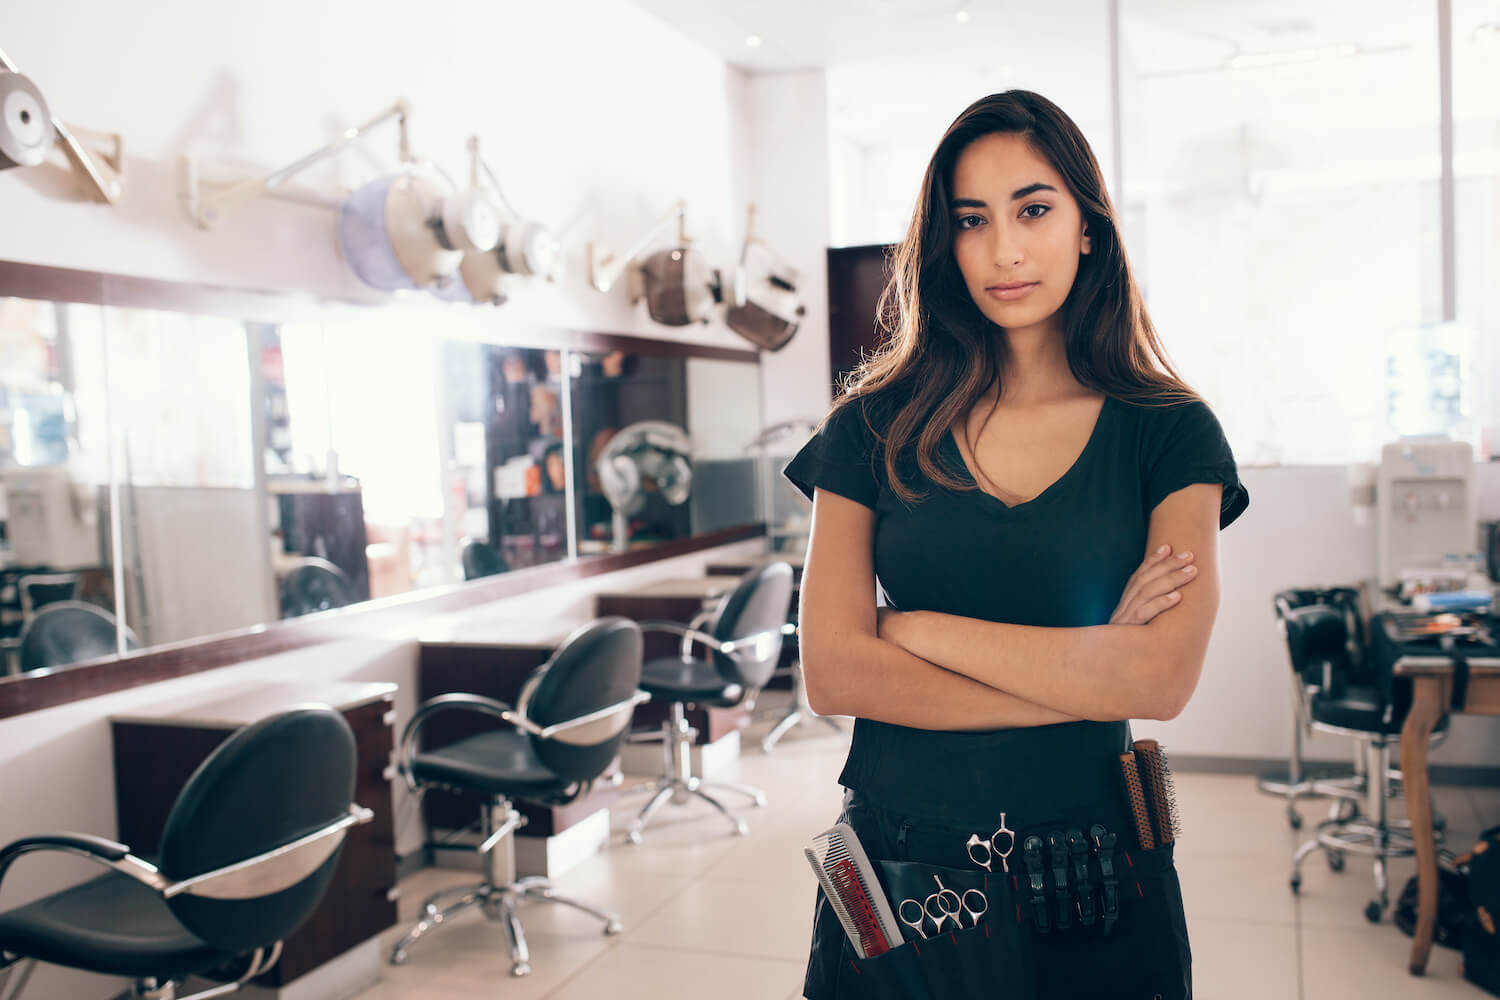 hairdresses worried about hair salon costs